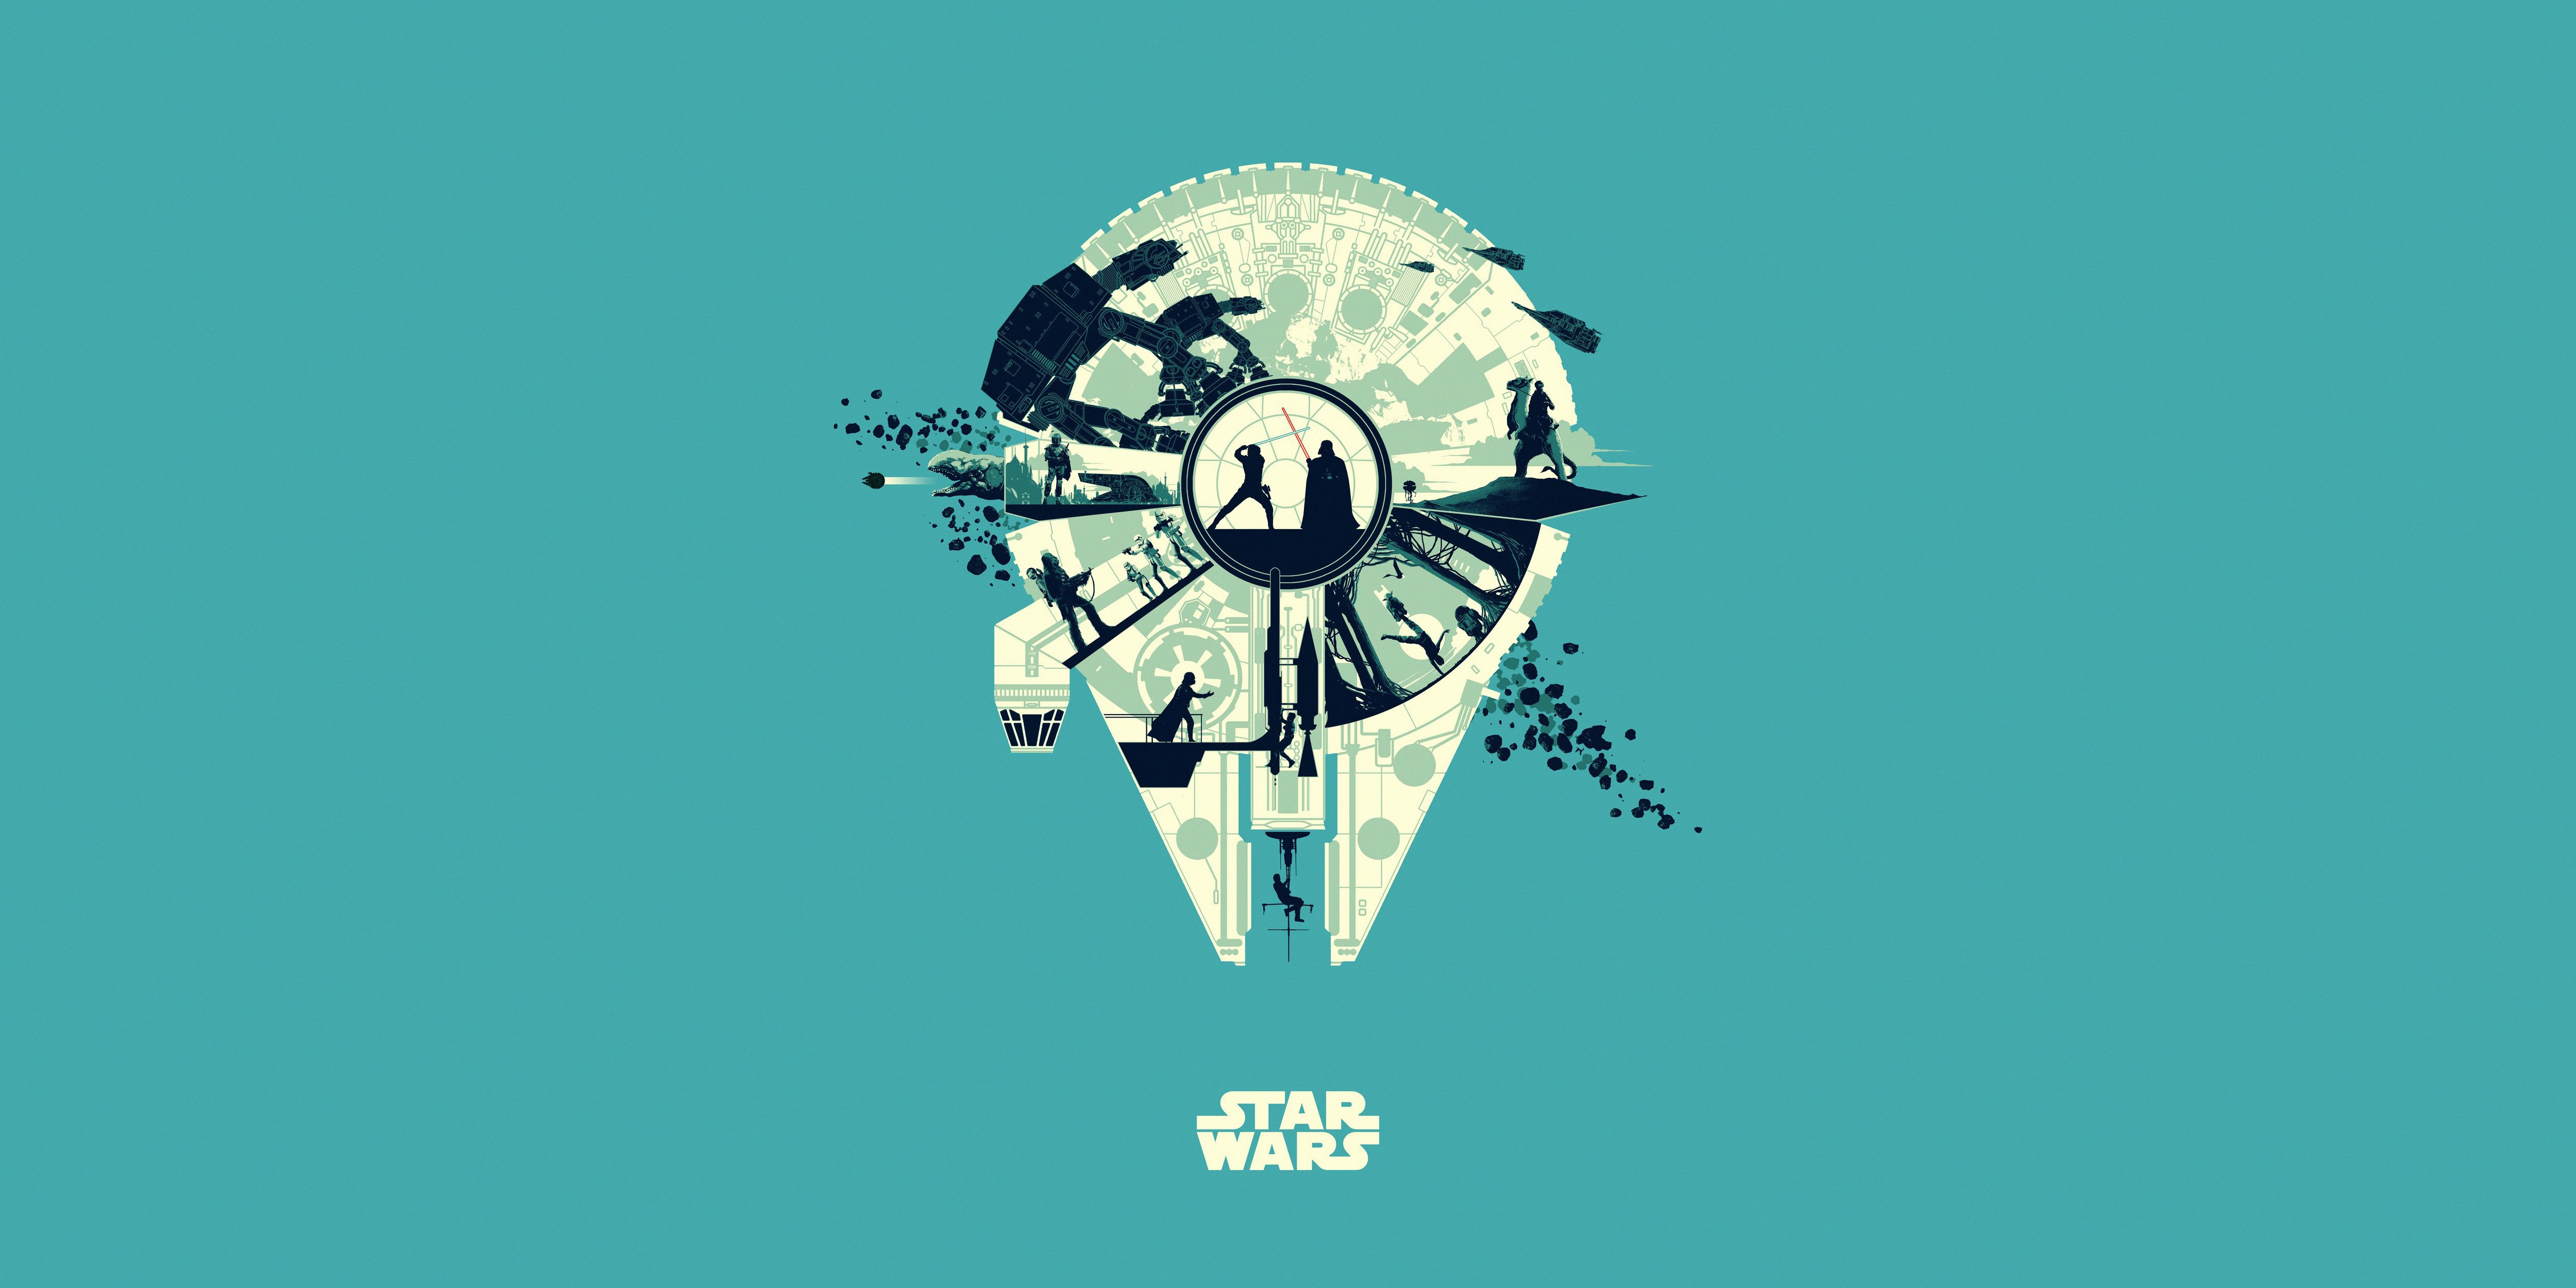 Star Wars Minimalism 5k Hd Artist 4k Wallpapers Images Backgrounds Photos And Pictures